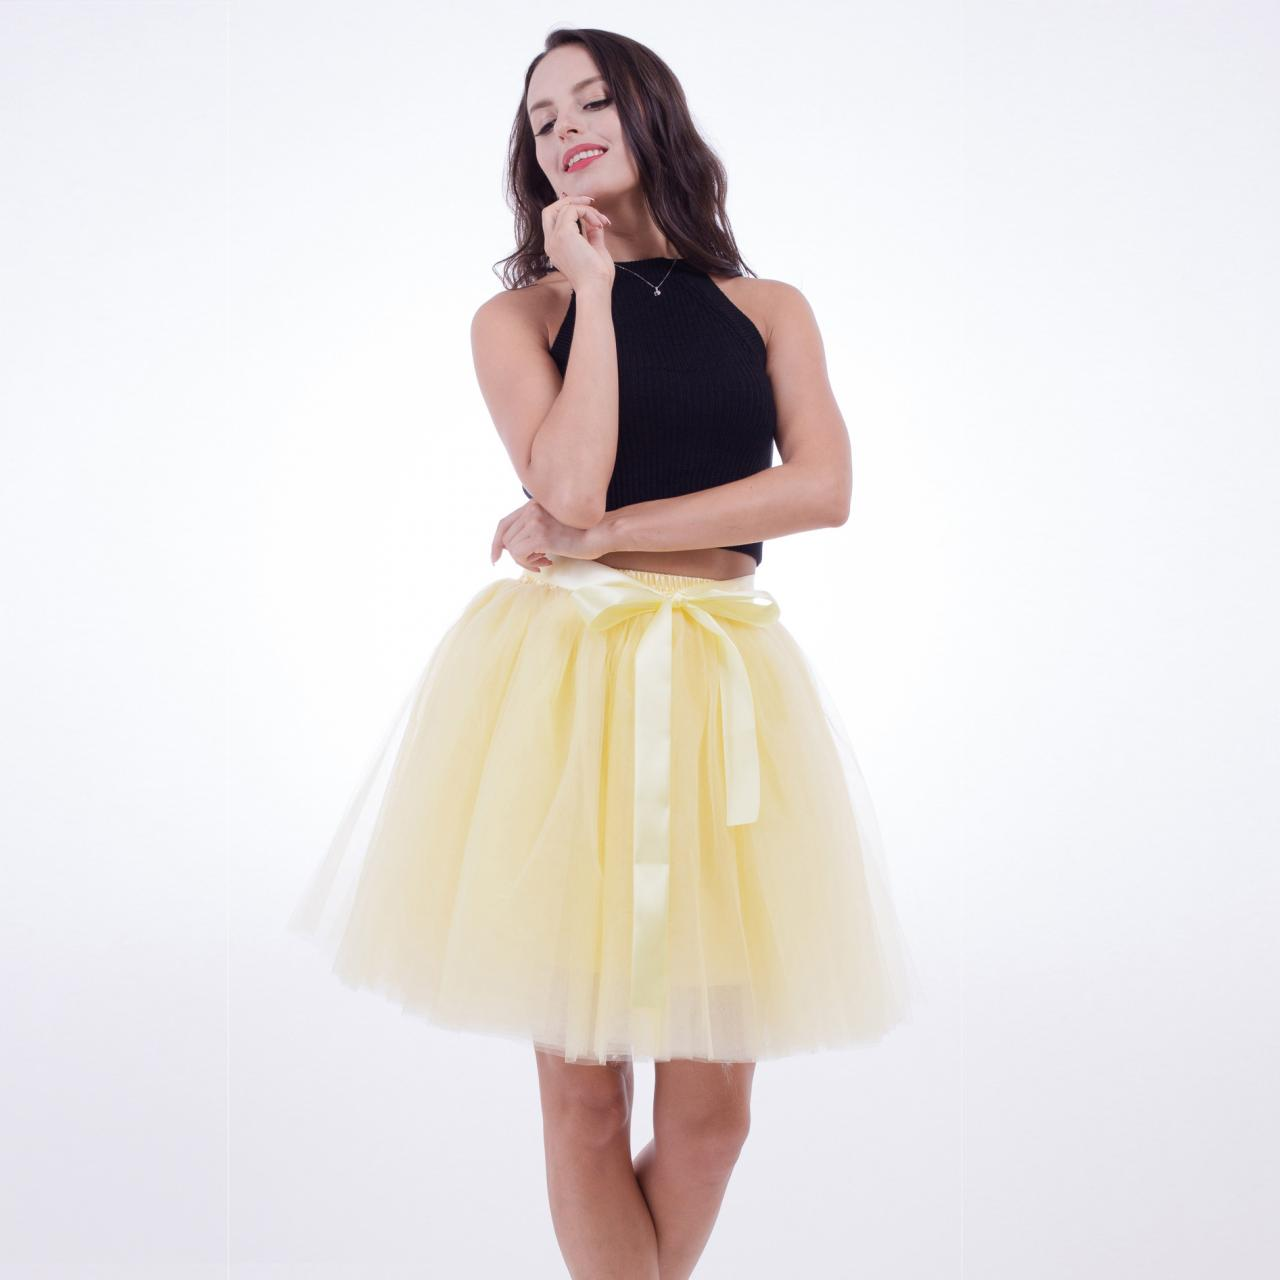 6 Layers Tulle Midi Lolita Skirt Women Adult Tutu Skirt American Apparel Wedding Bridesmaid Party Petticoat yellow